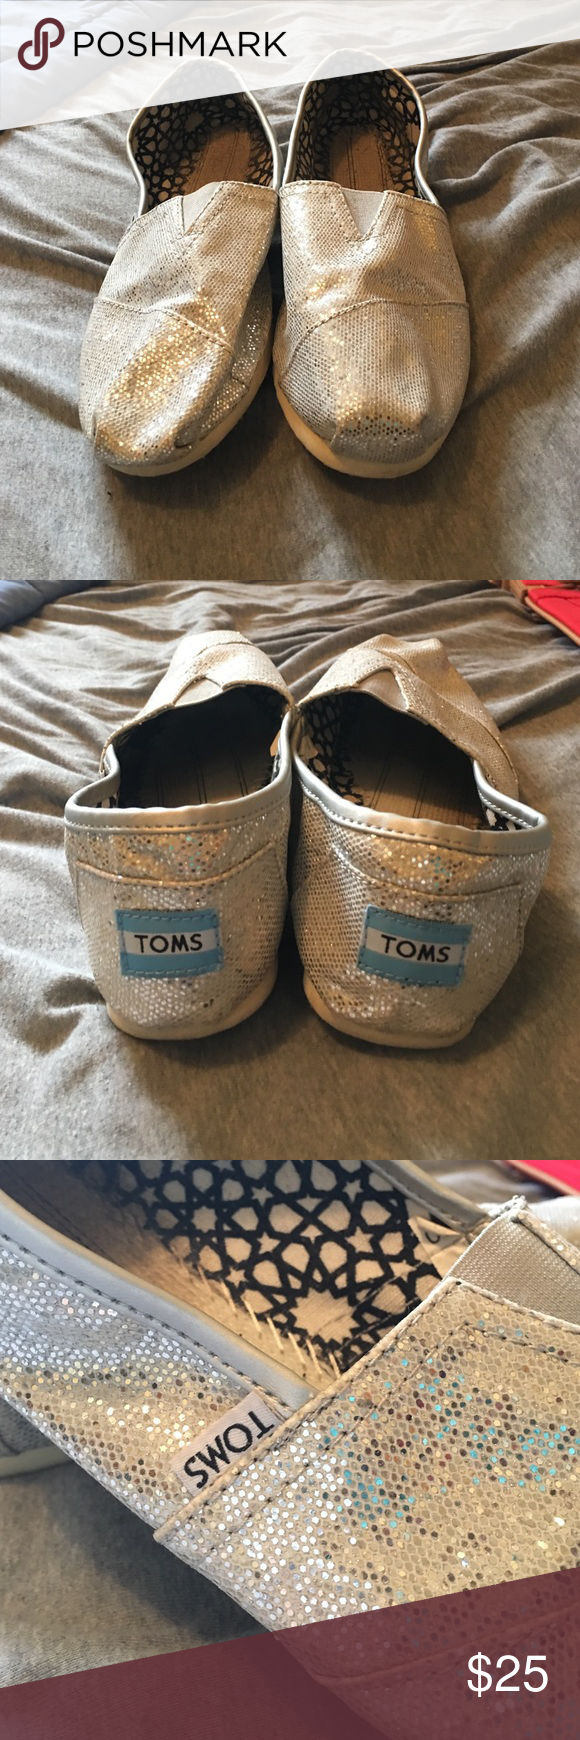 Silver glittery Toms! Only worn once and the drawstring bag is included! TOMS Shoes Flats & Loafers